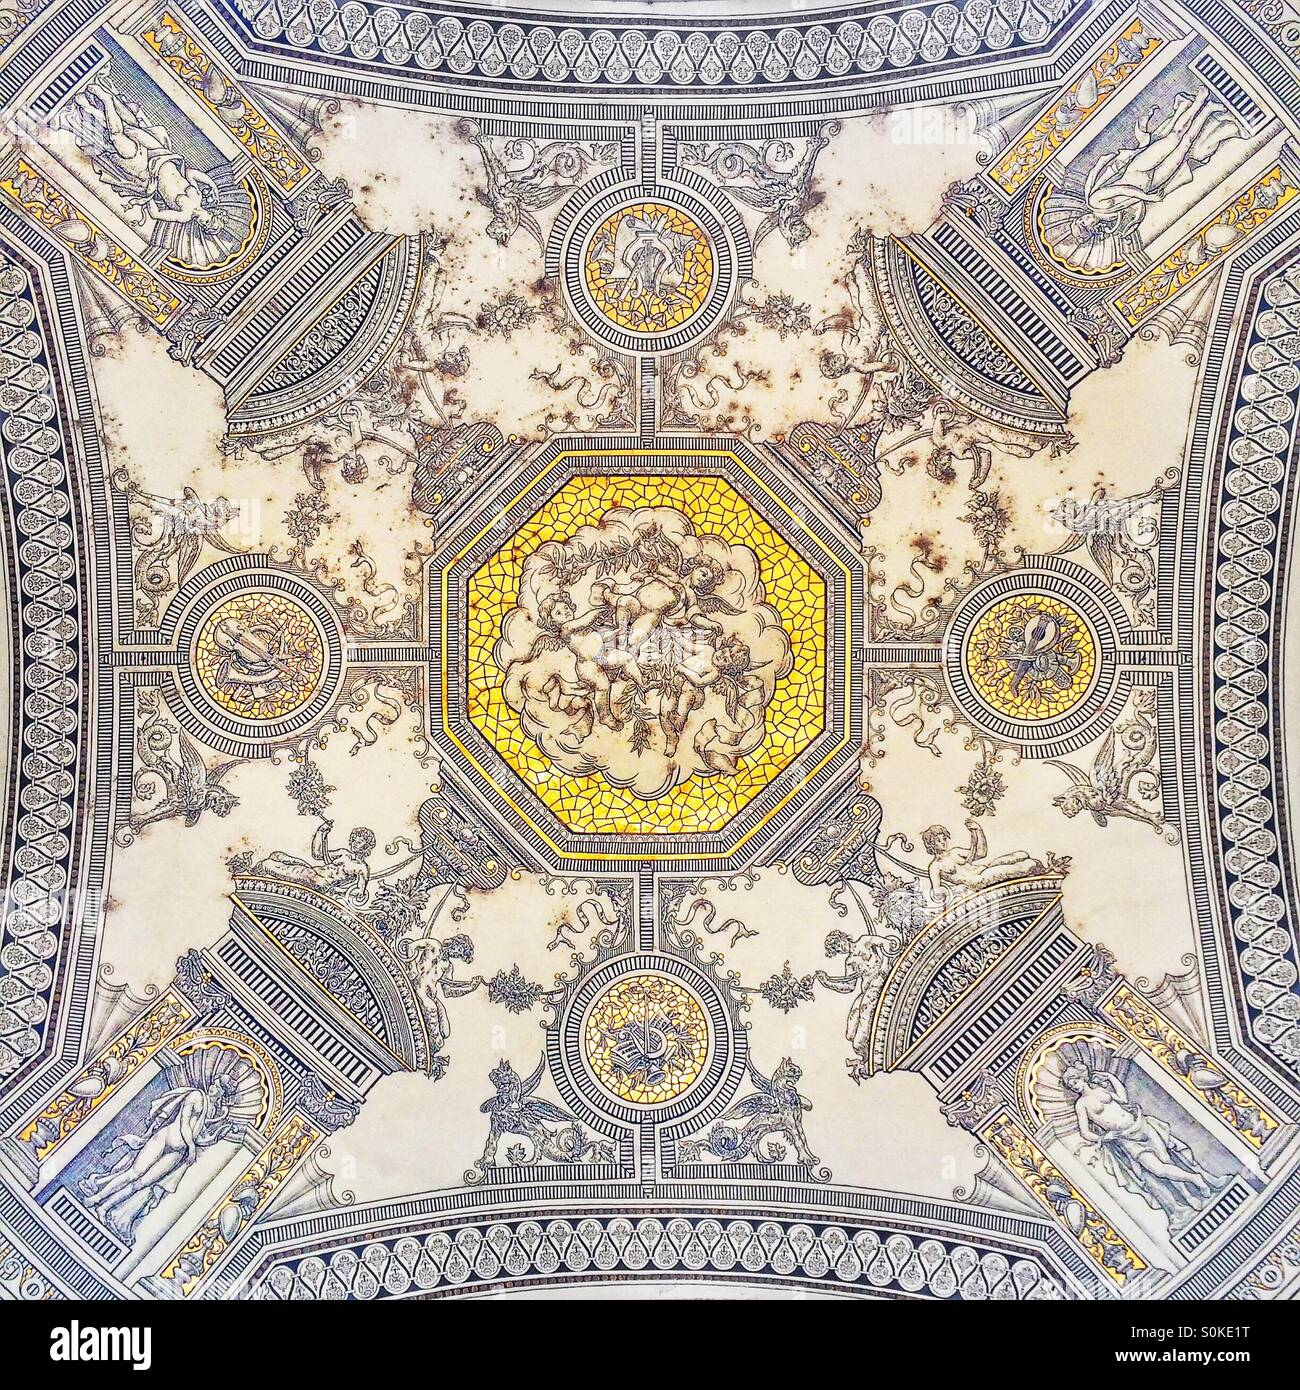 Entrance ceiling of the Hungarian State Opera House, Budapest, Hungary - Stock Image